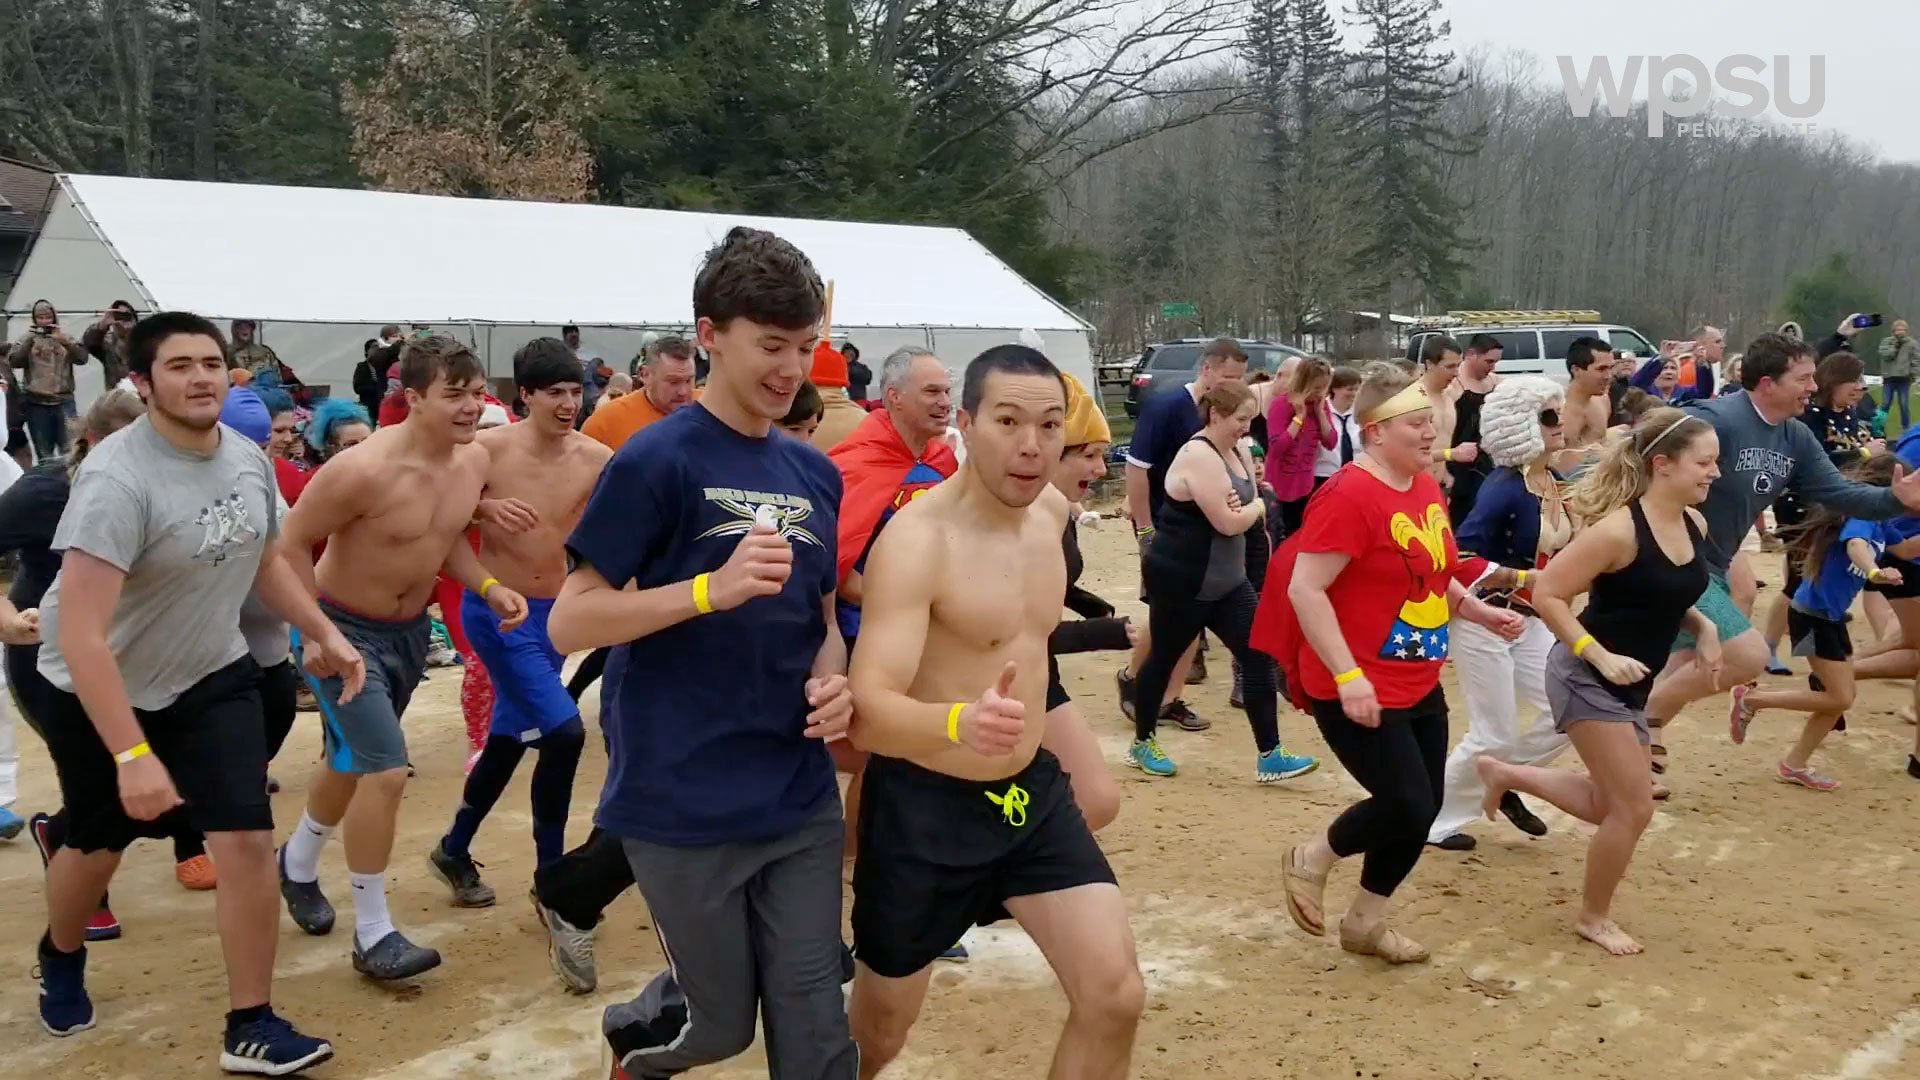 group of people ready to participate in a polar plunge